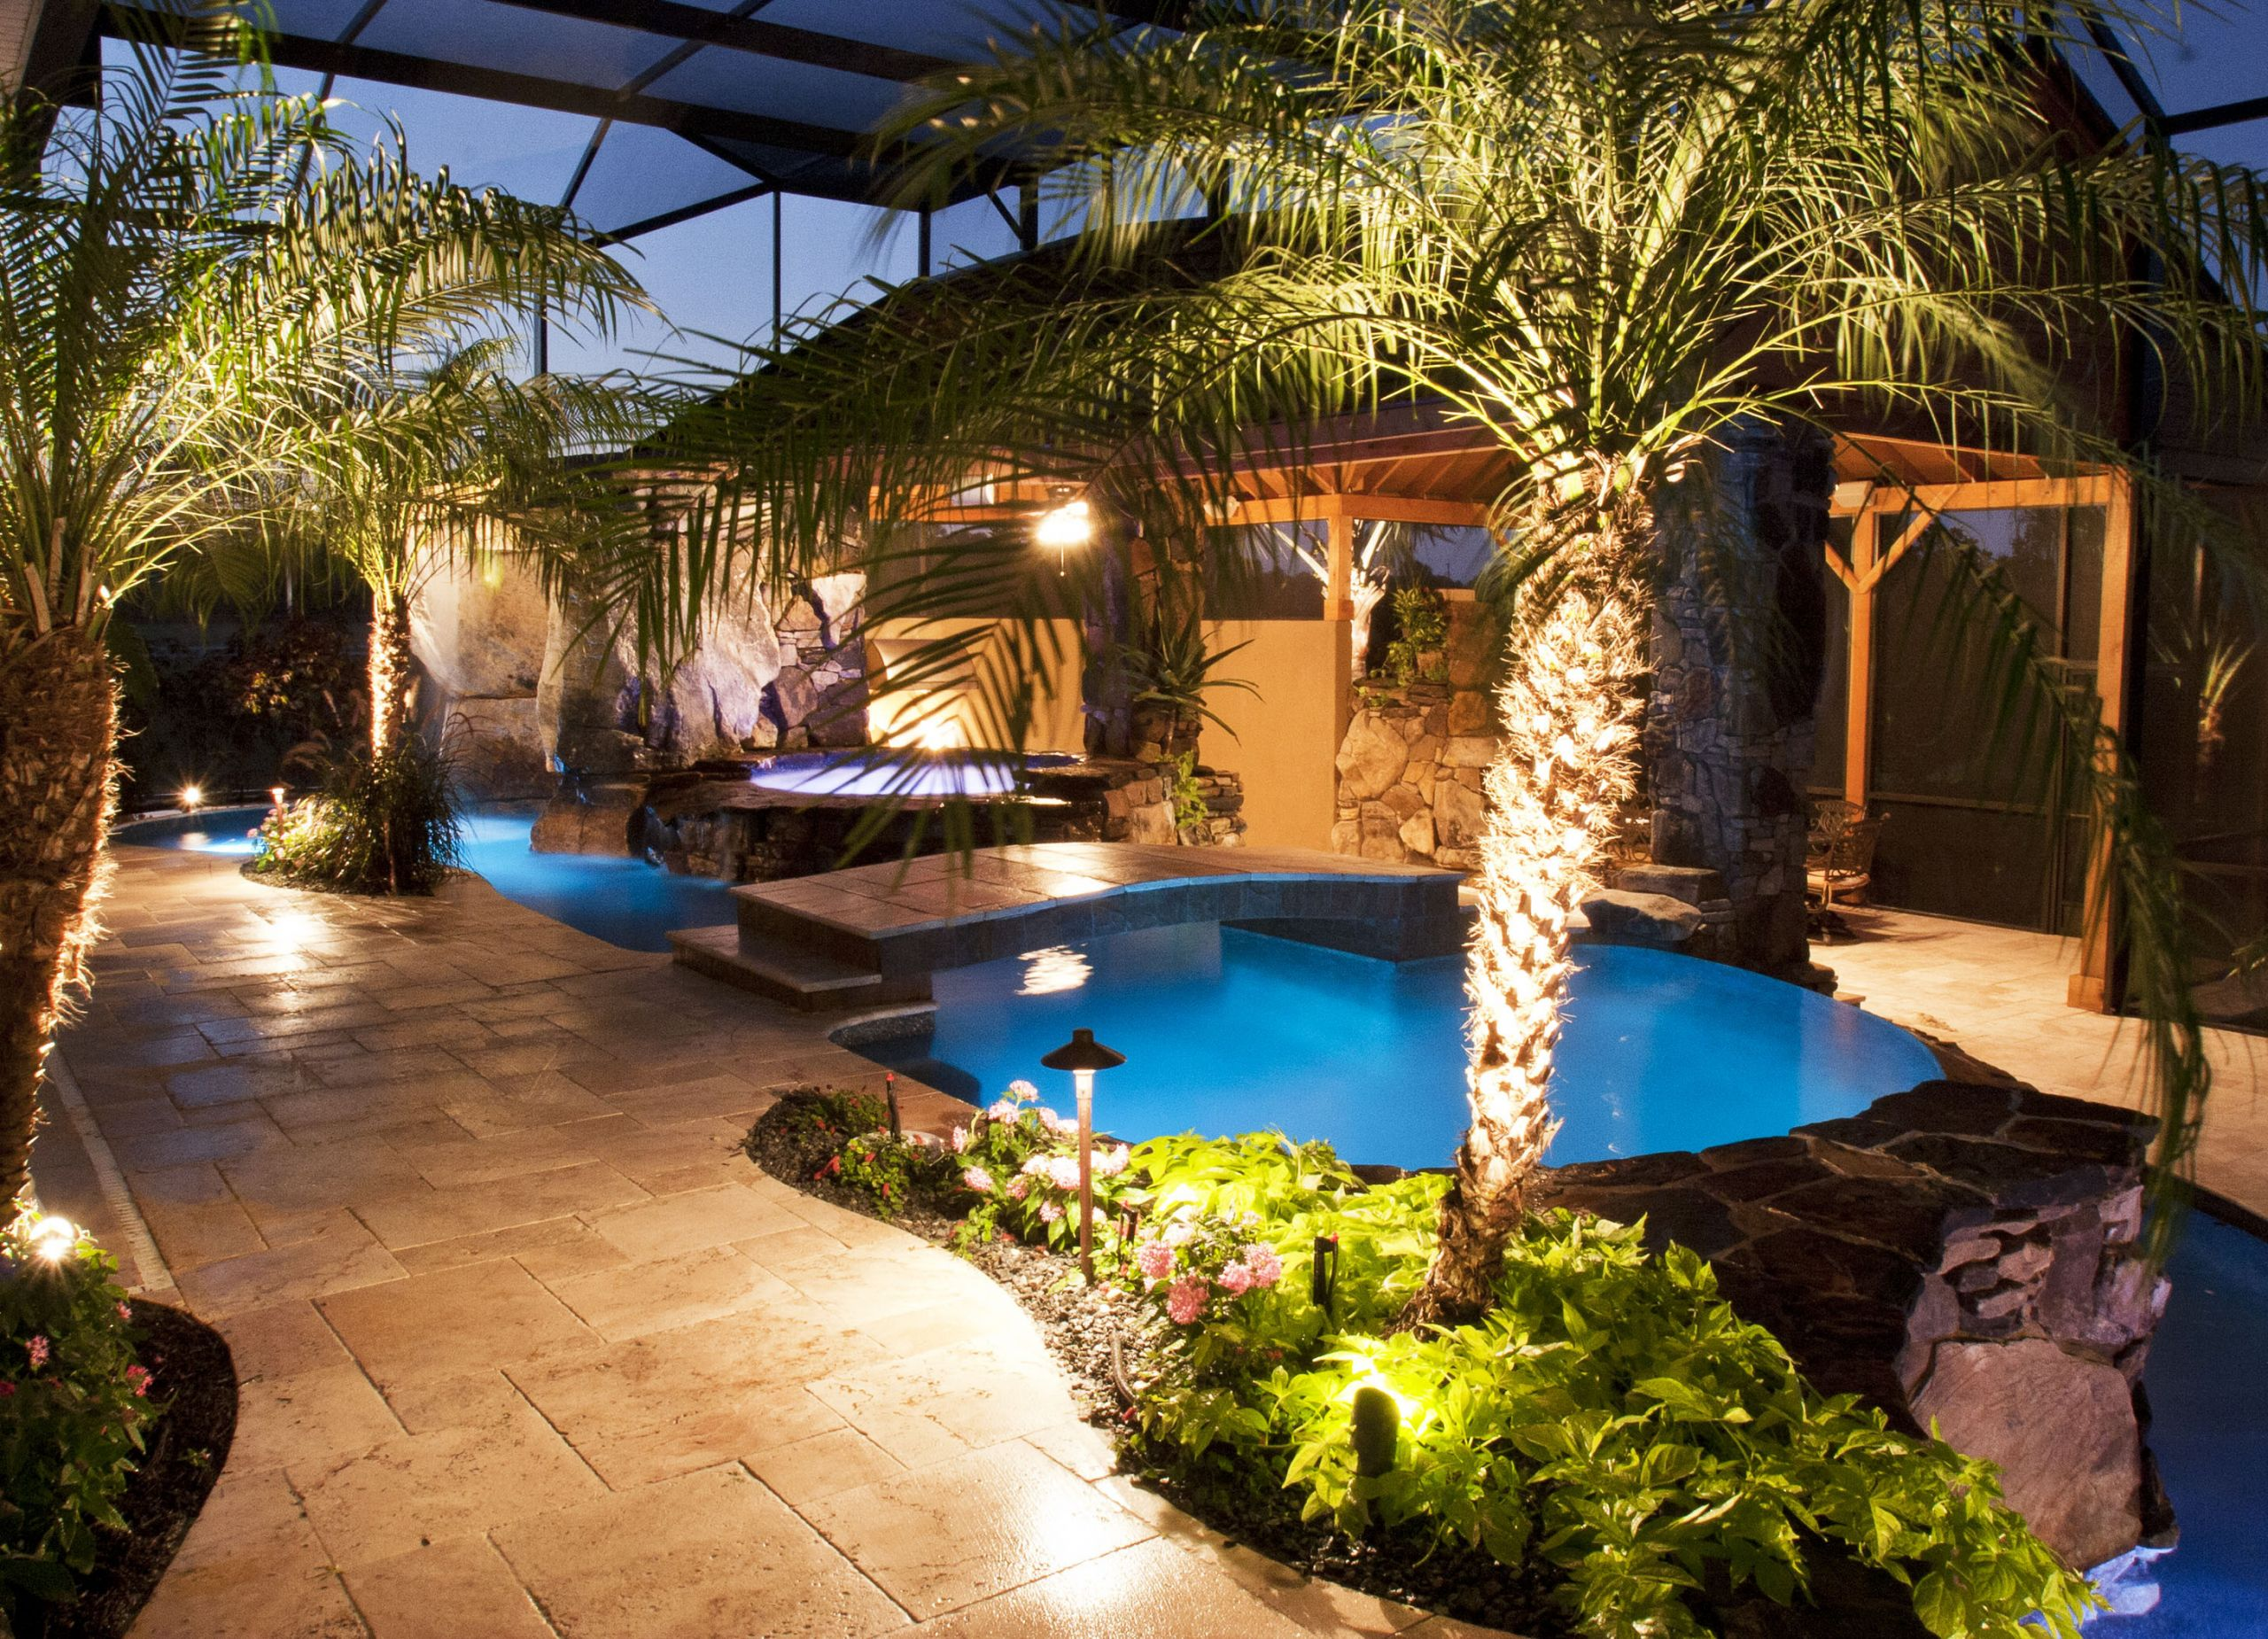 Outdoor Kitchen And Pool  Lucas Lagoons Swimming Pool and Spa with Outdoor Kitchen